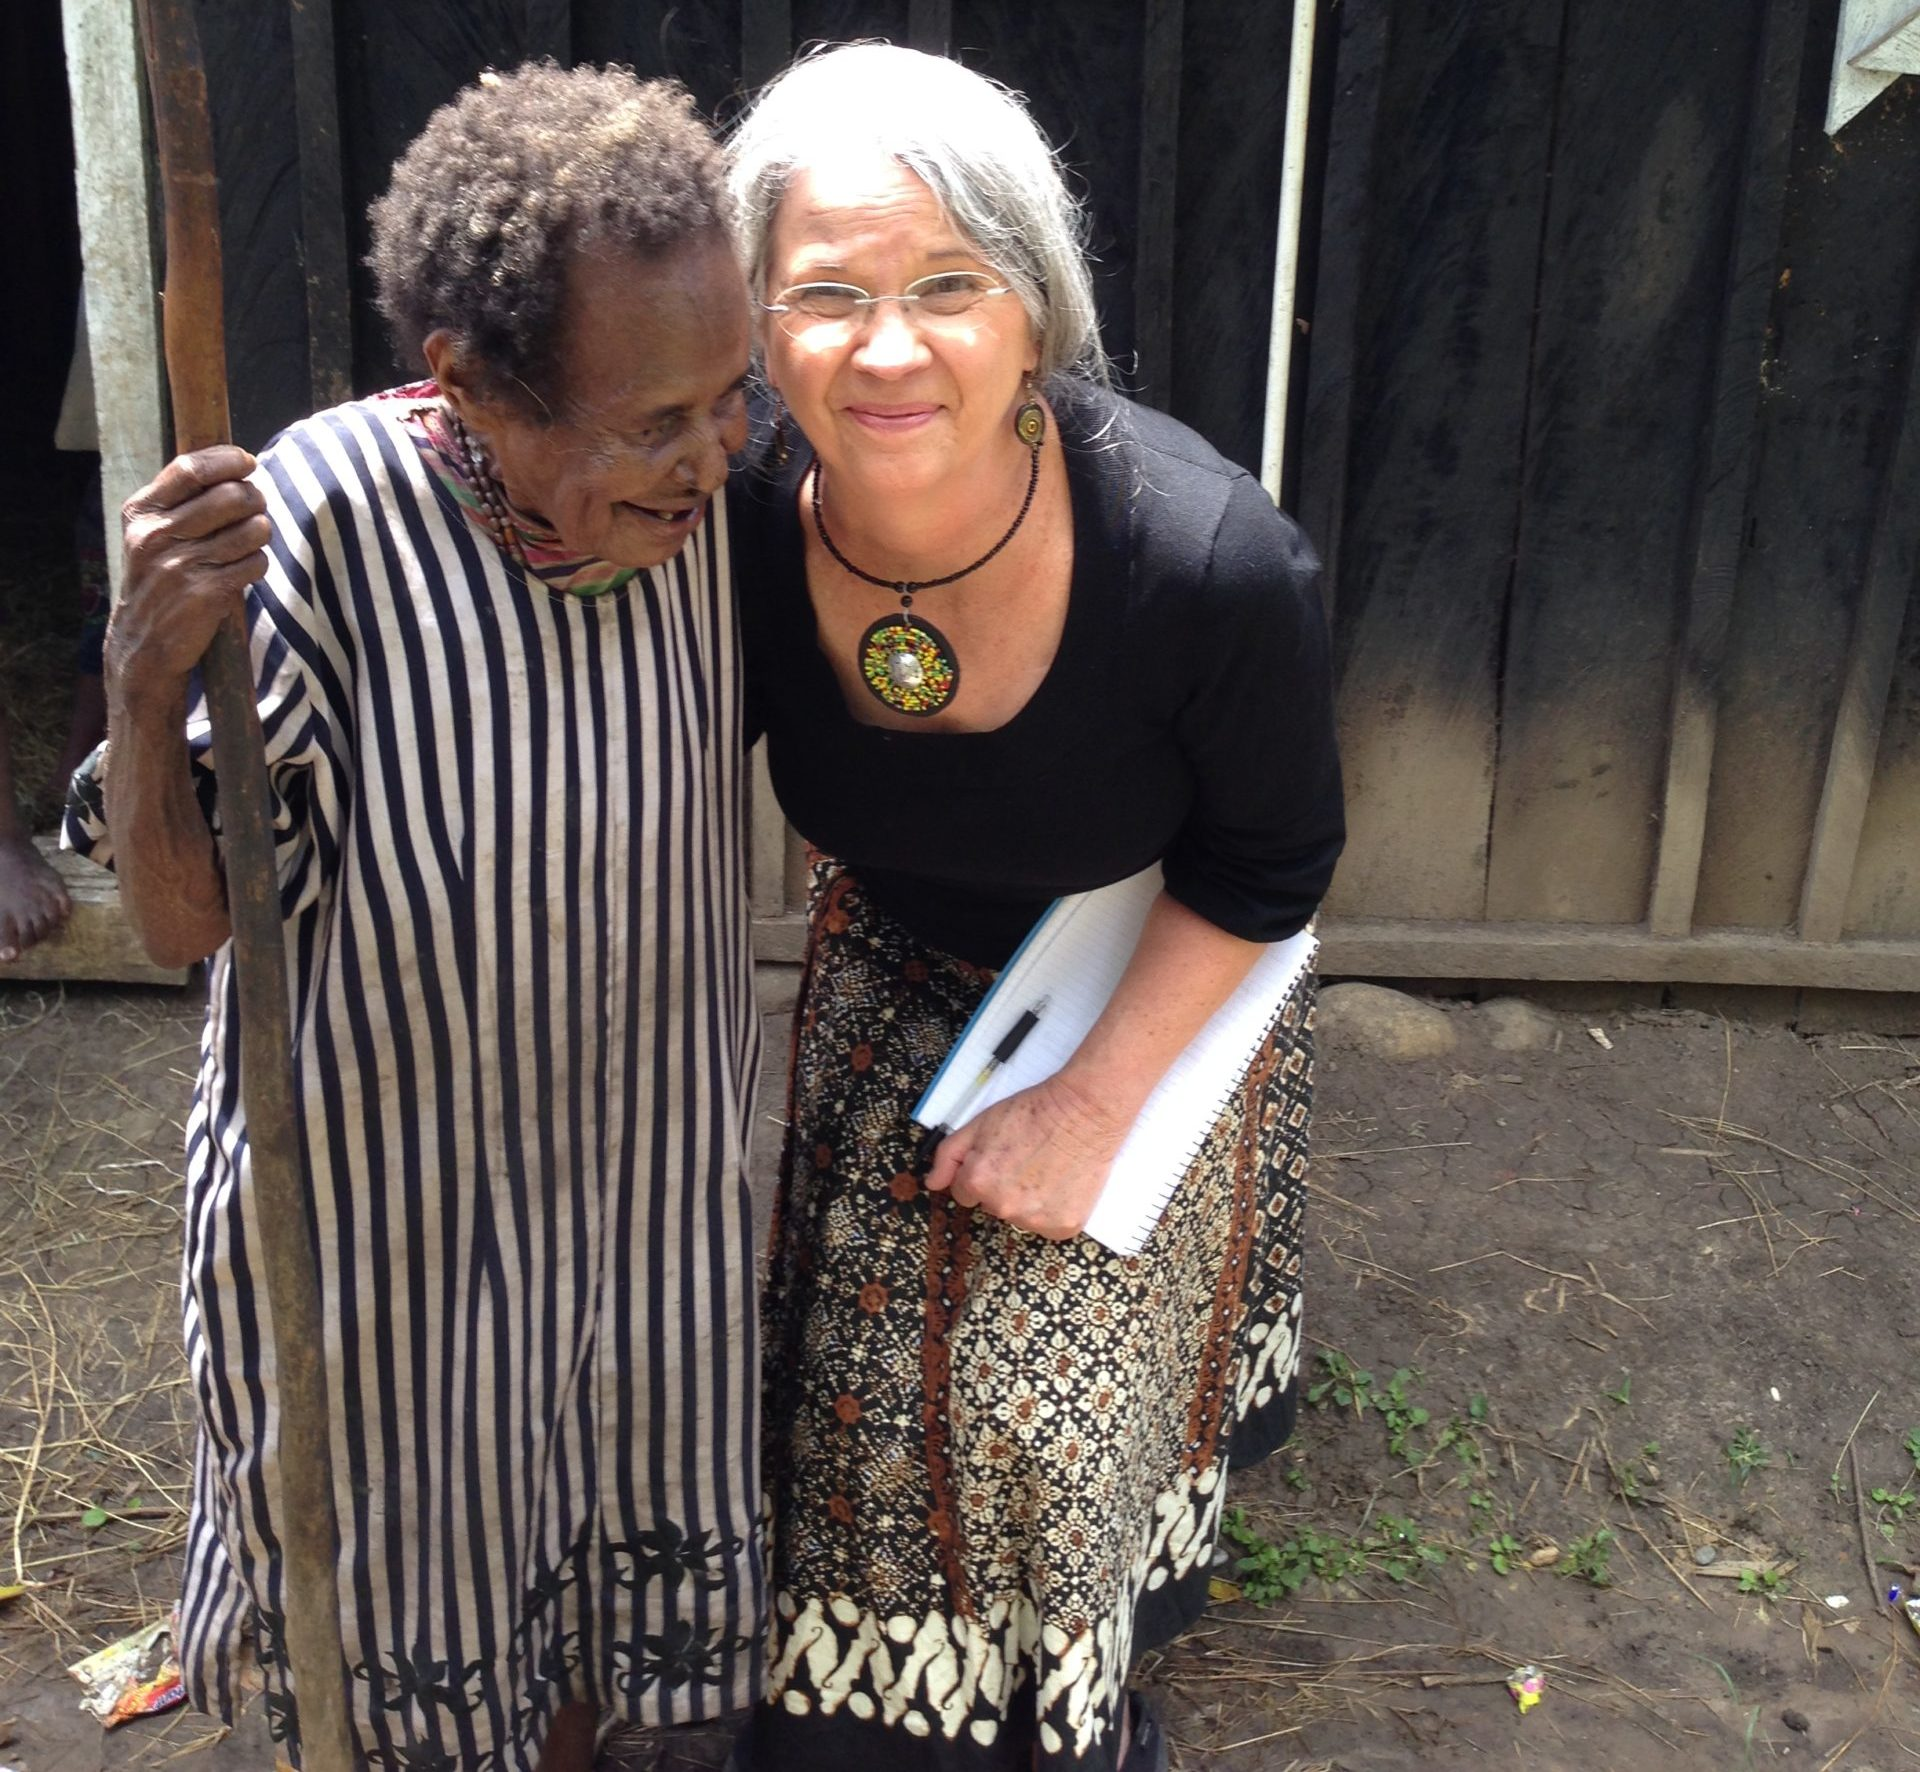 Debbie Dortzbach of World Relief with an agemate (woman who shares her age) in Papau, New Guinea.